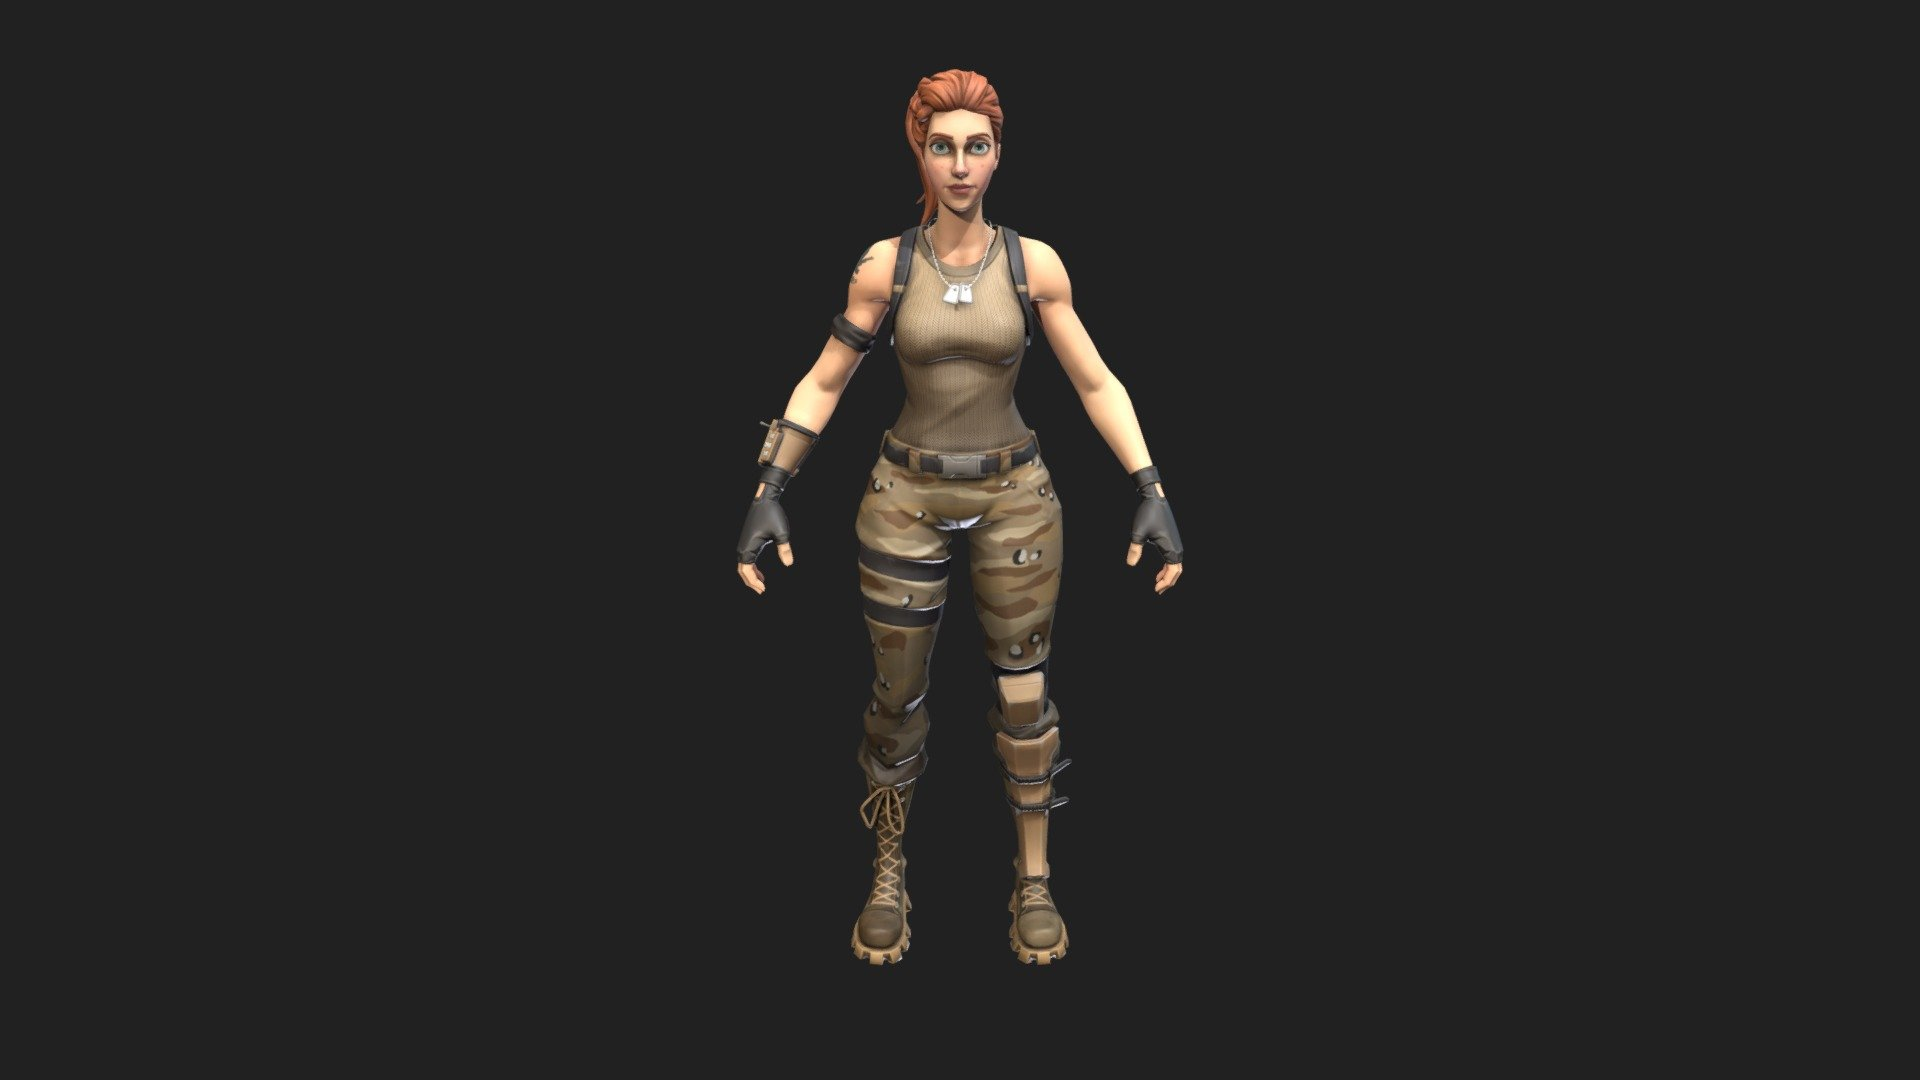 Fortnite Tower Recon Specialist 3d Model By Skin Tracker Stairwave A8d2b93 Sketchfab